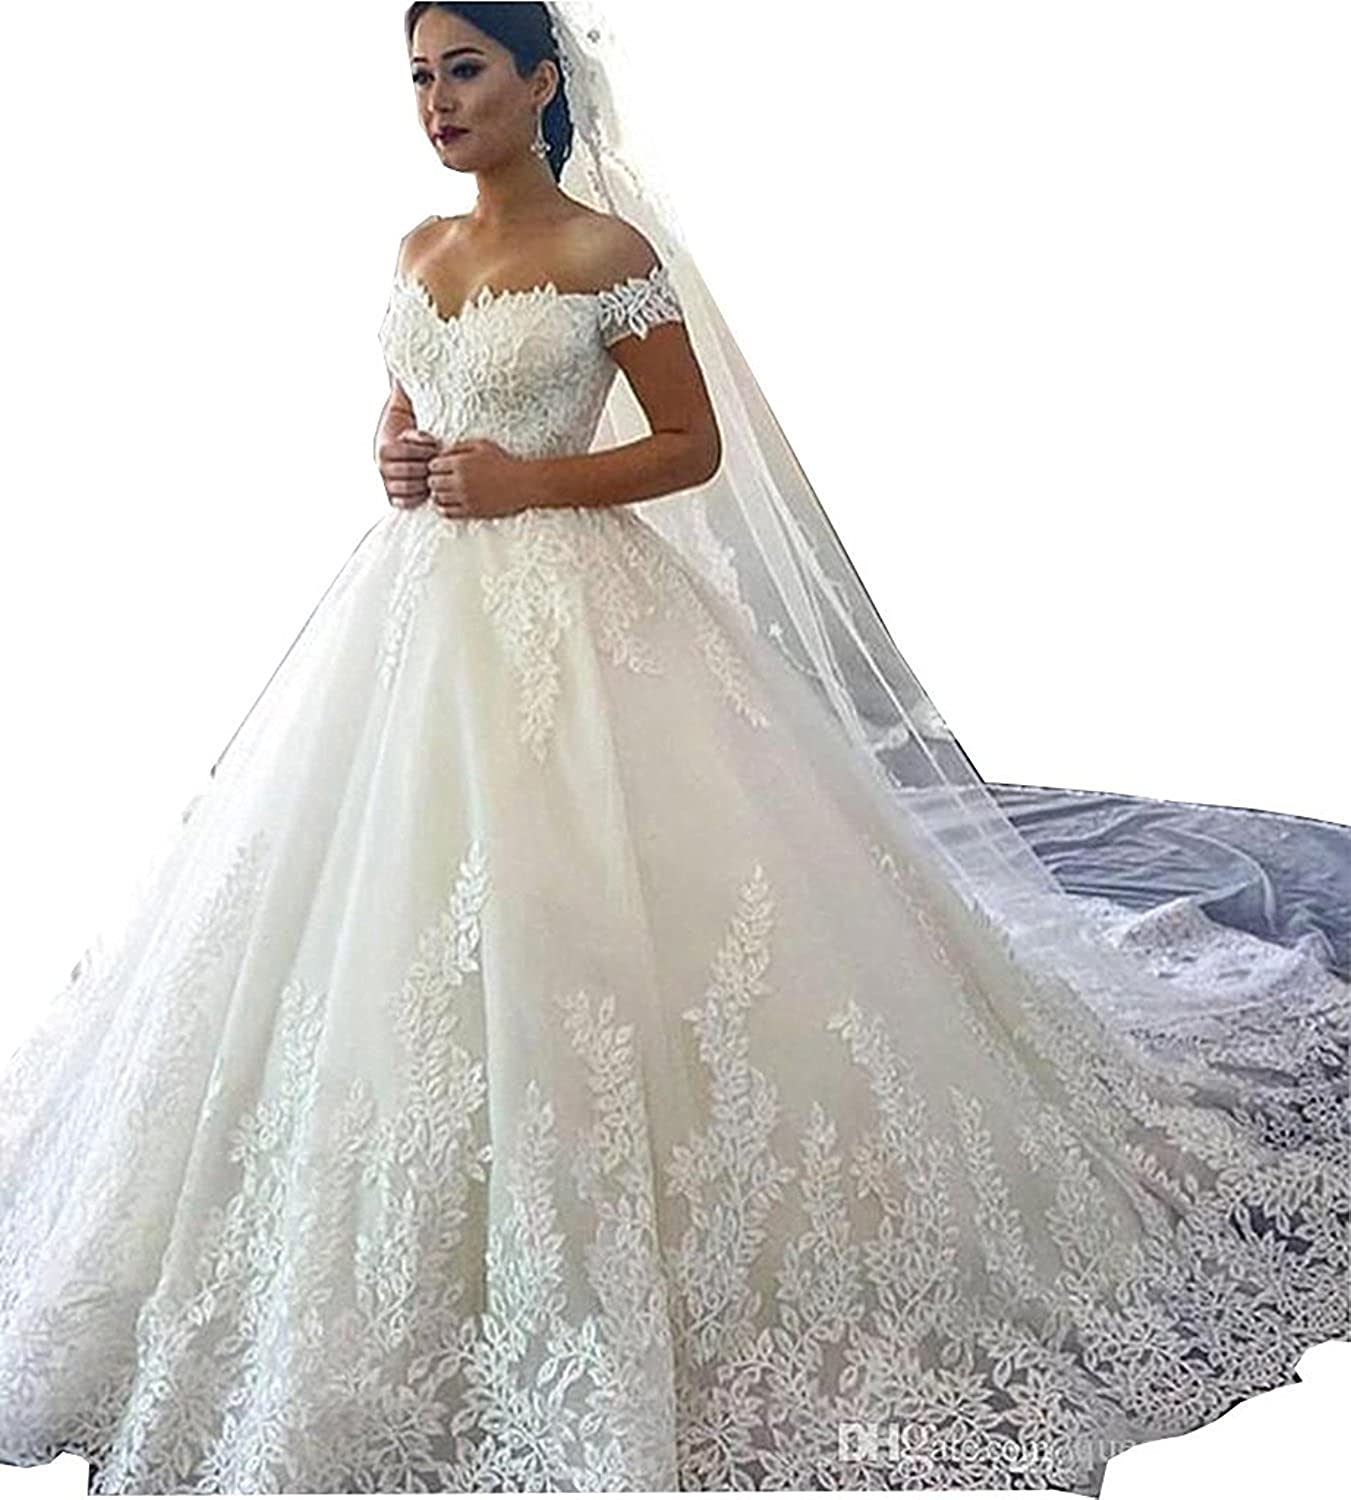 eb6e8ead3a0 Yilian Women s Lace Wedding Dresses for Bride 2018 Ball Gowns White at  Amazon Women s Clothing store